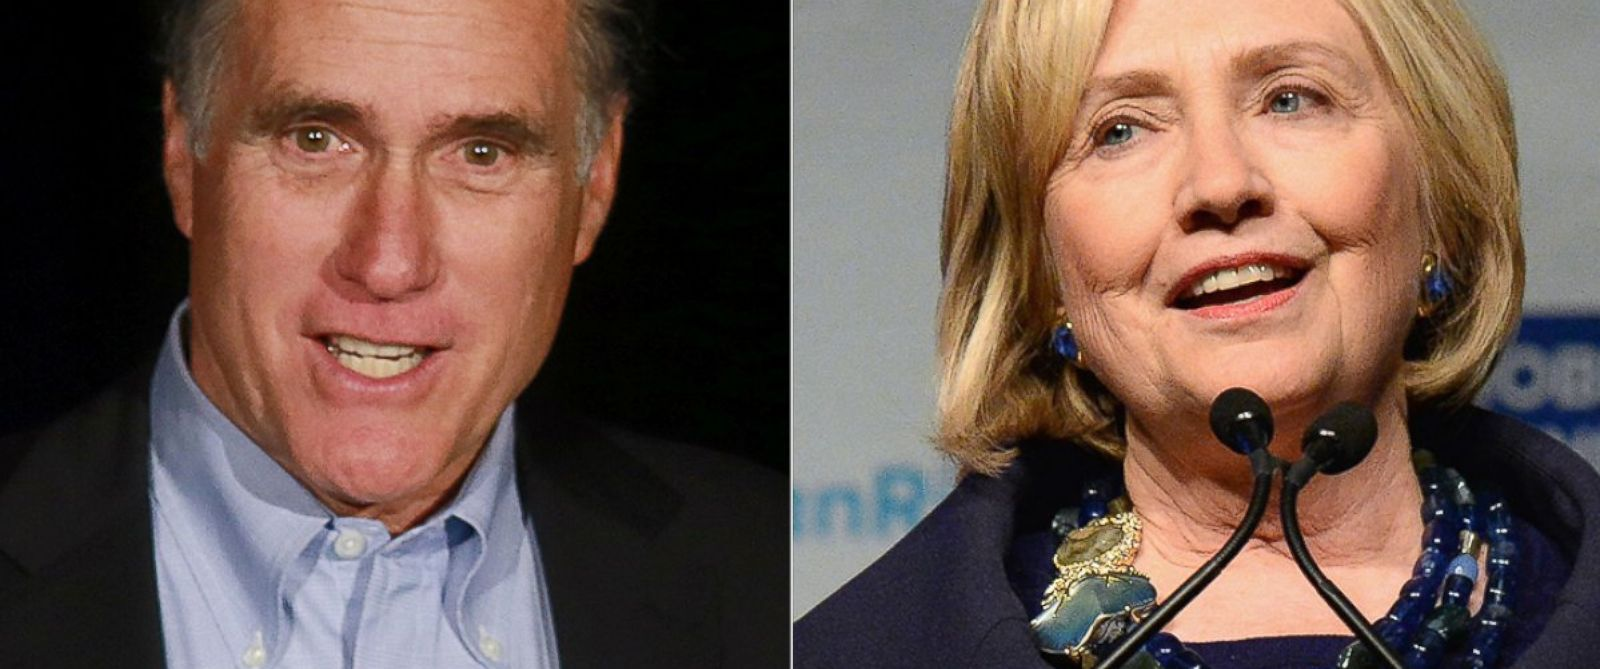 PHOTO: Mitt Romney, left, is pictured on Jan. 16, 2015 in San Diego, Calif. Hillary Clinton, right, is pictured on Dec. 16, 2014 in New York City.